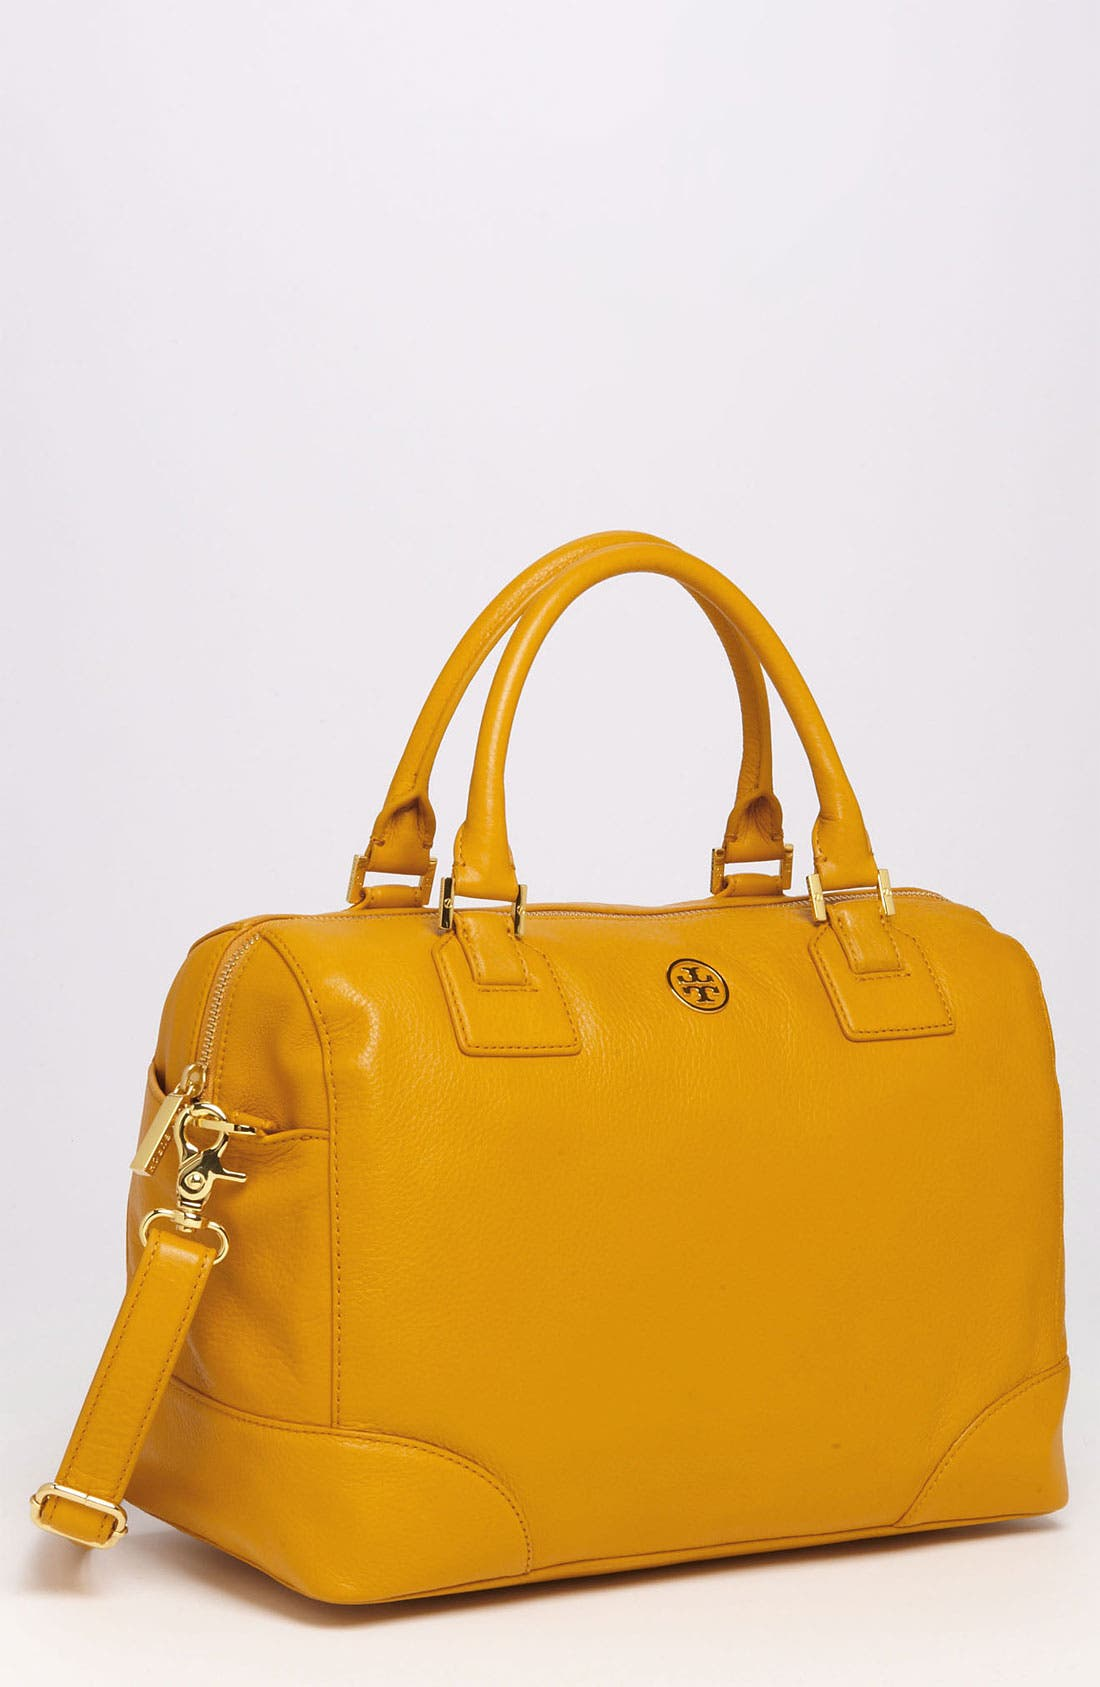 Main Image - Tory Burch 'Robinson' Satchel